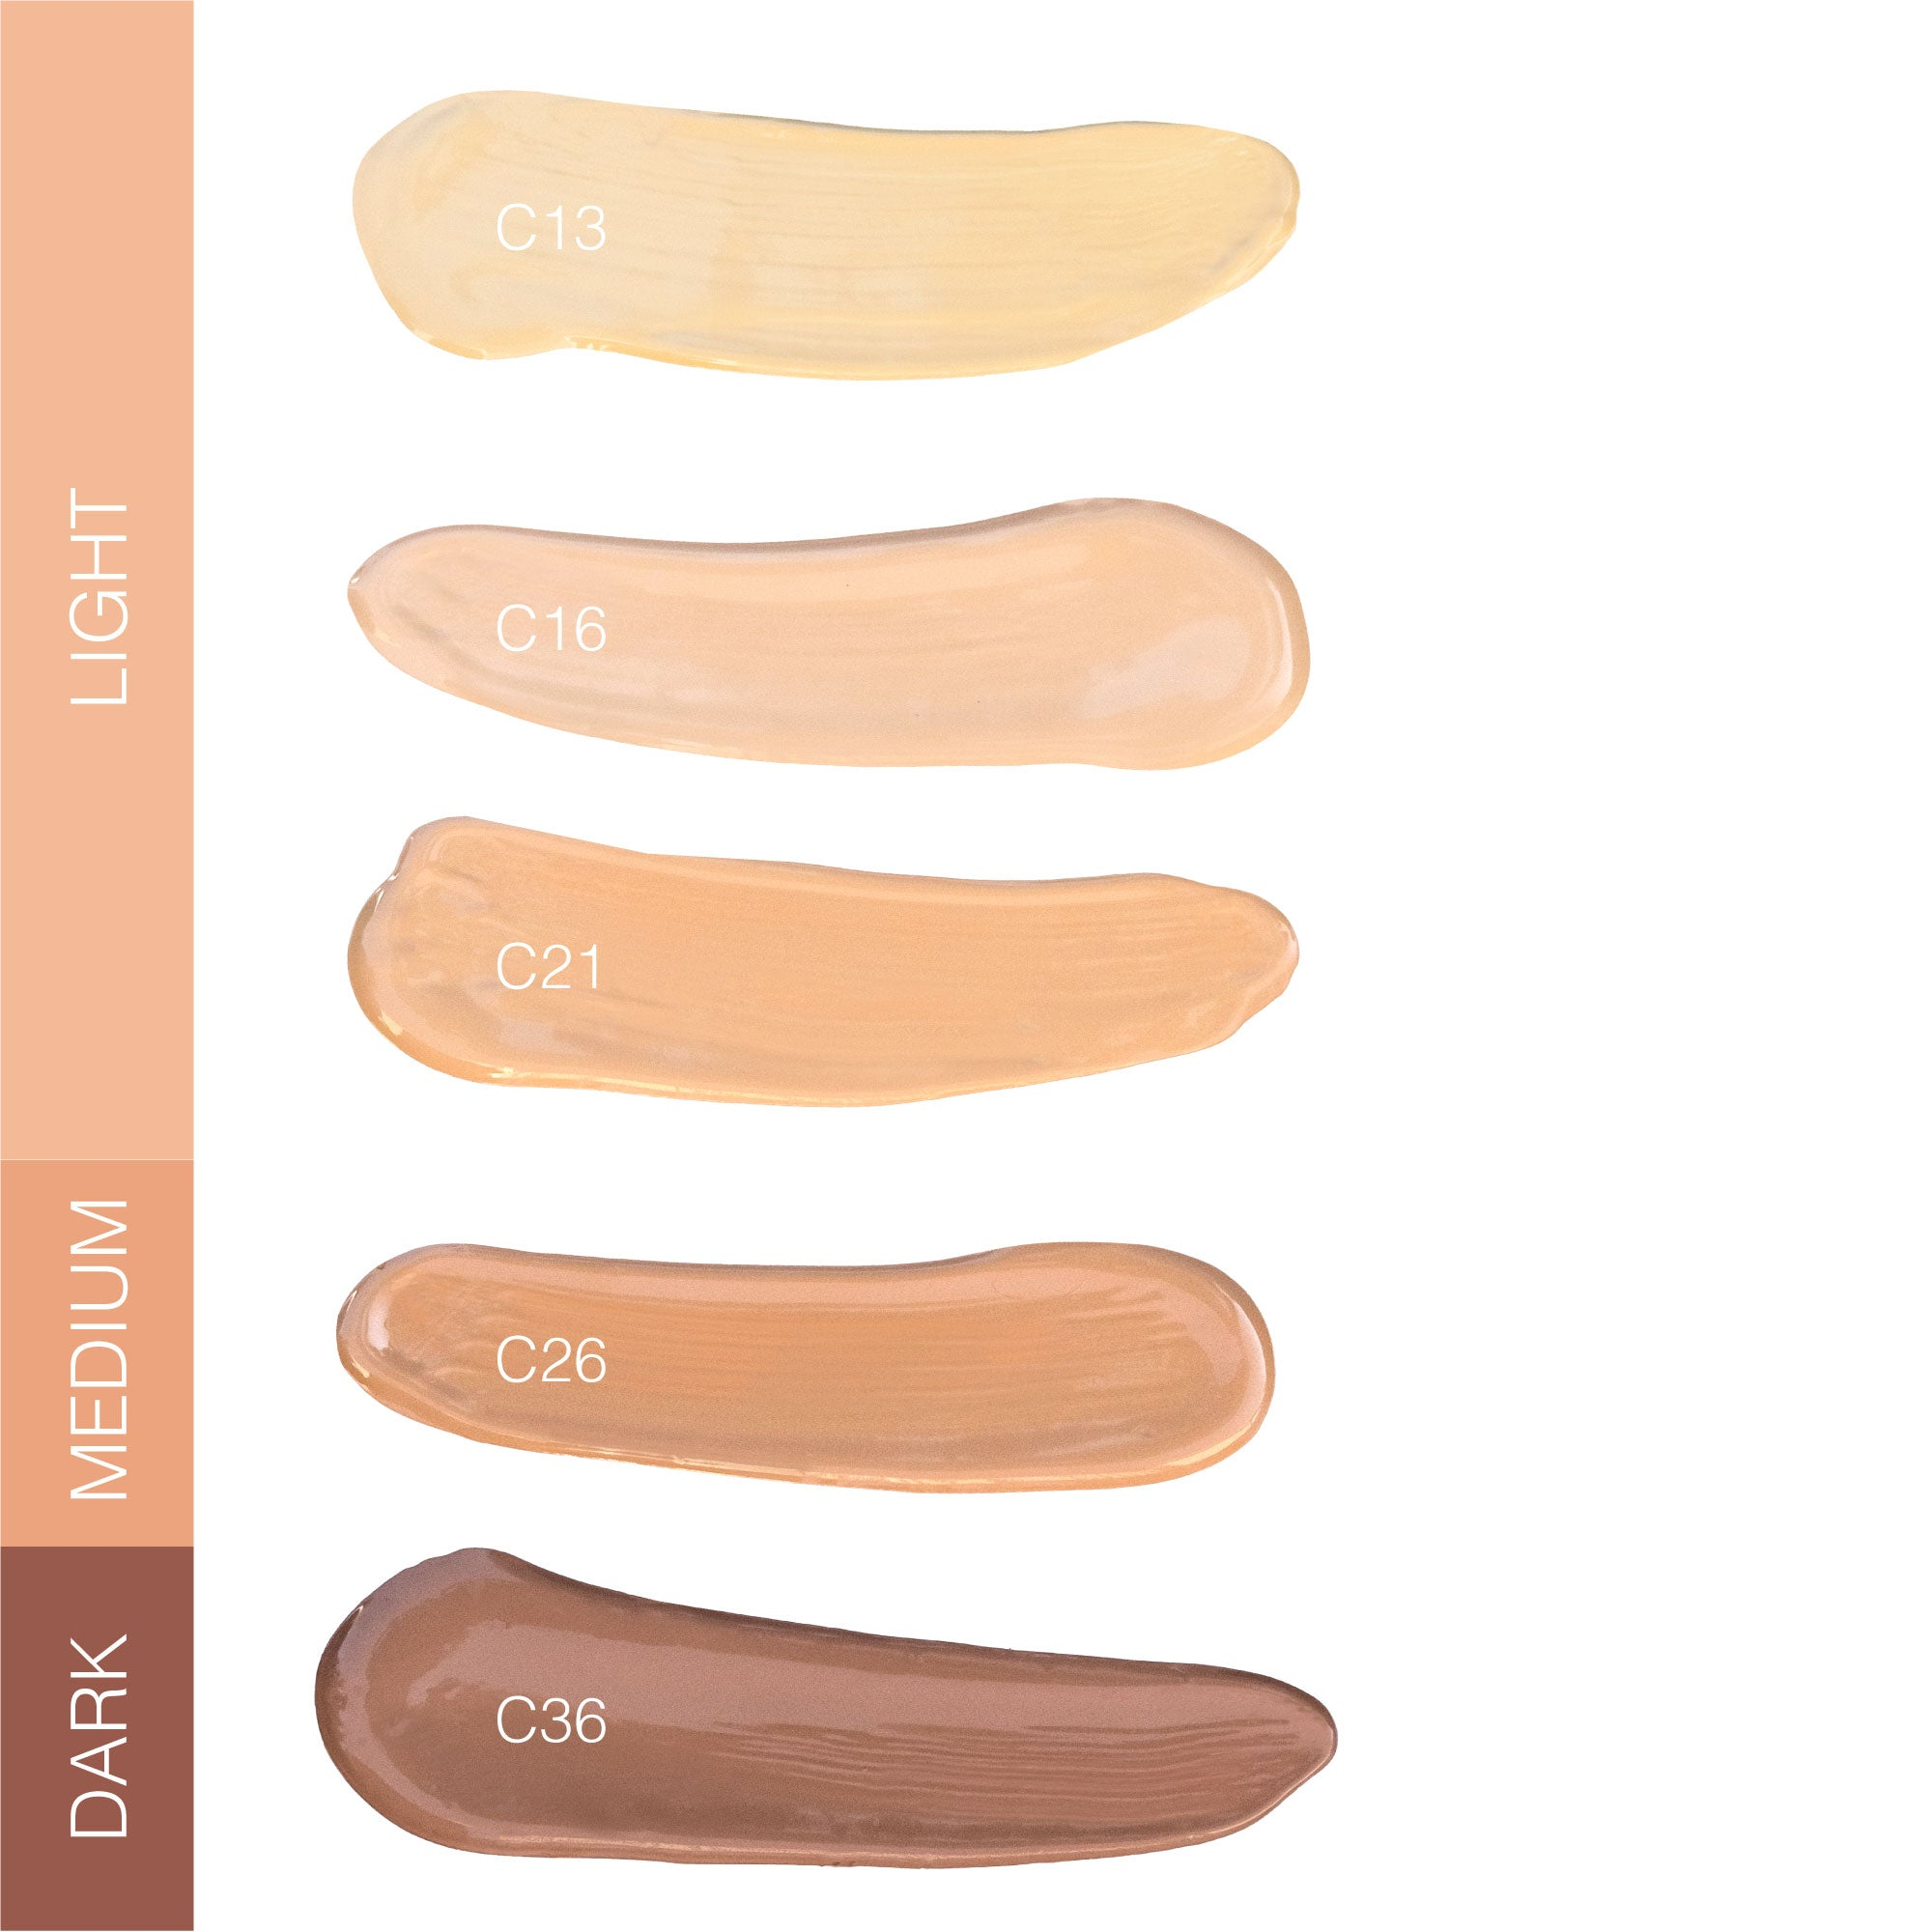 Instant Blur HD Concealer Shade Chart